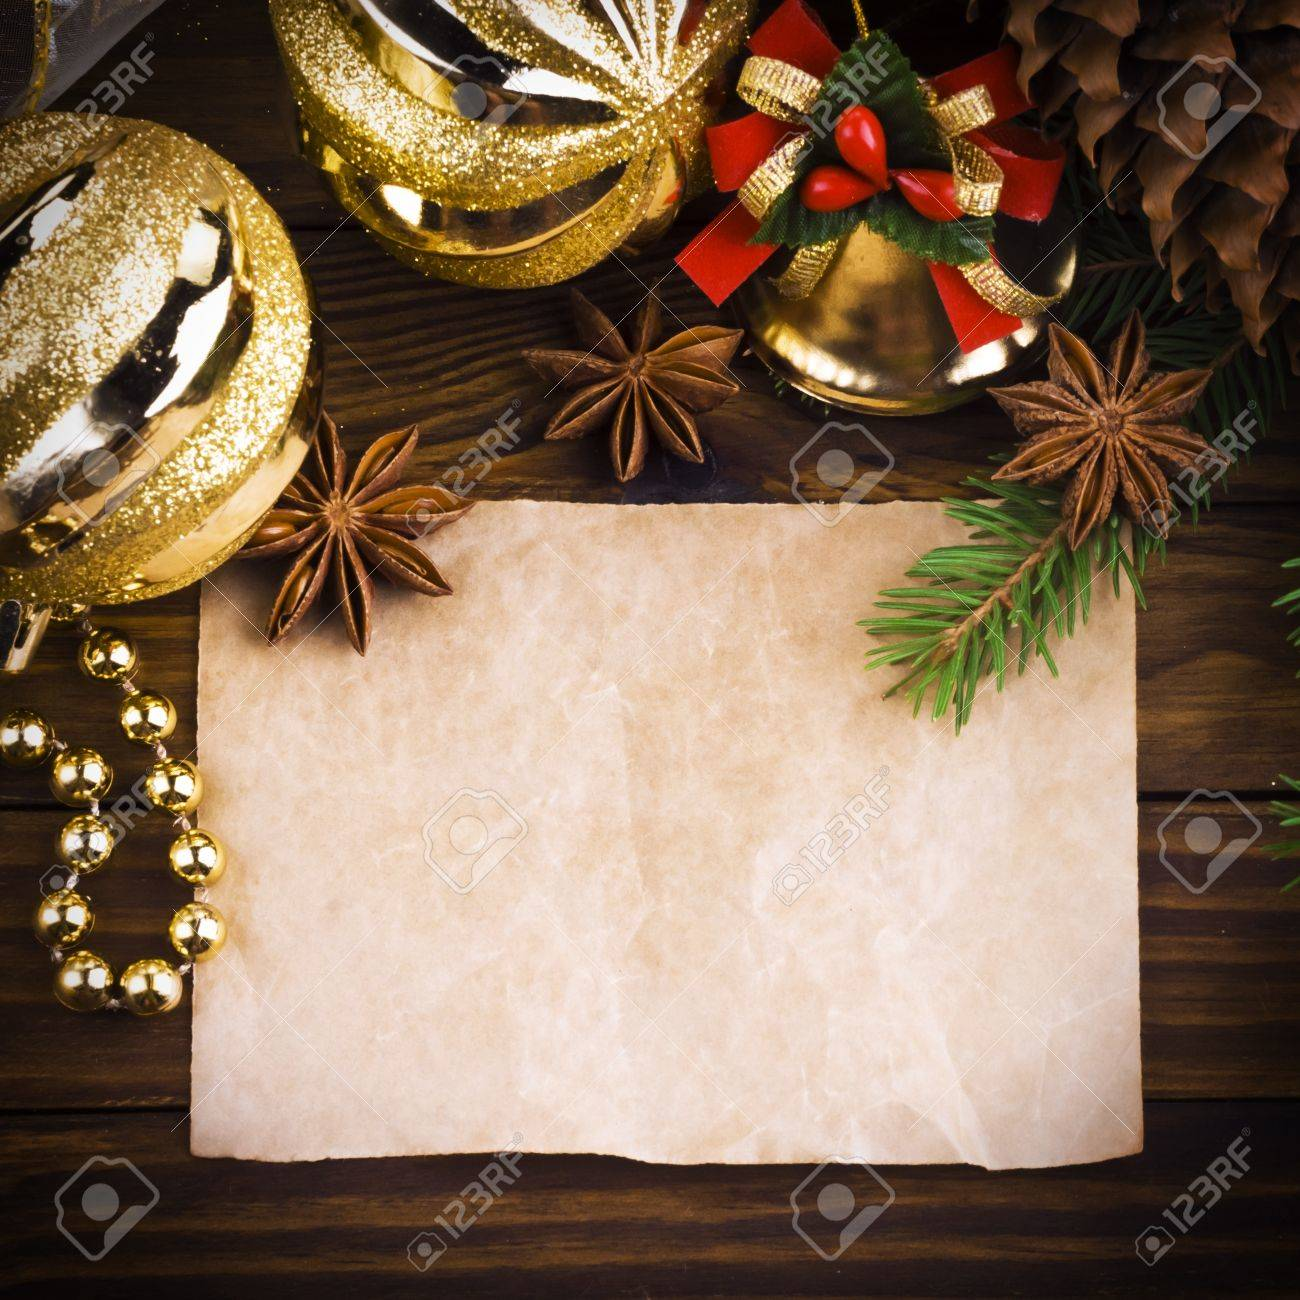 Christmas decoration over old wood background - 16622643